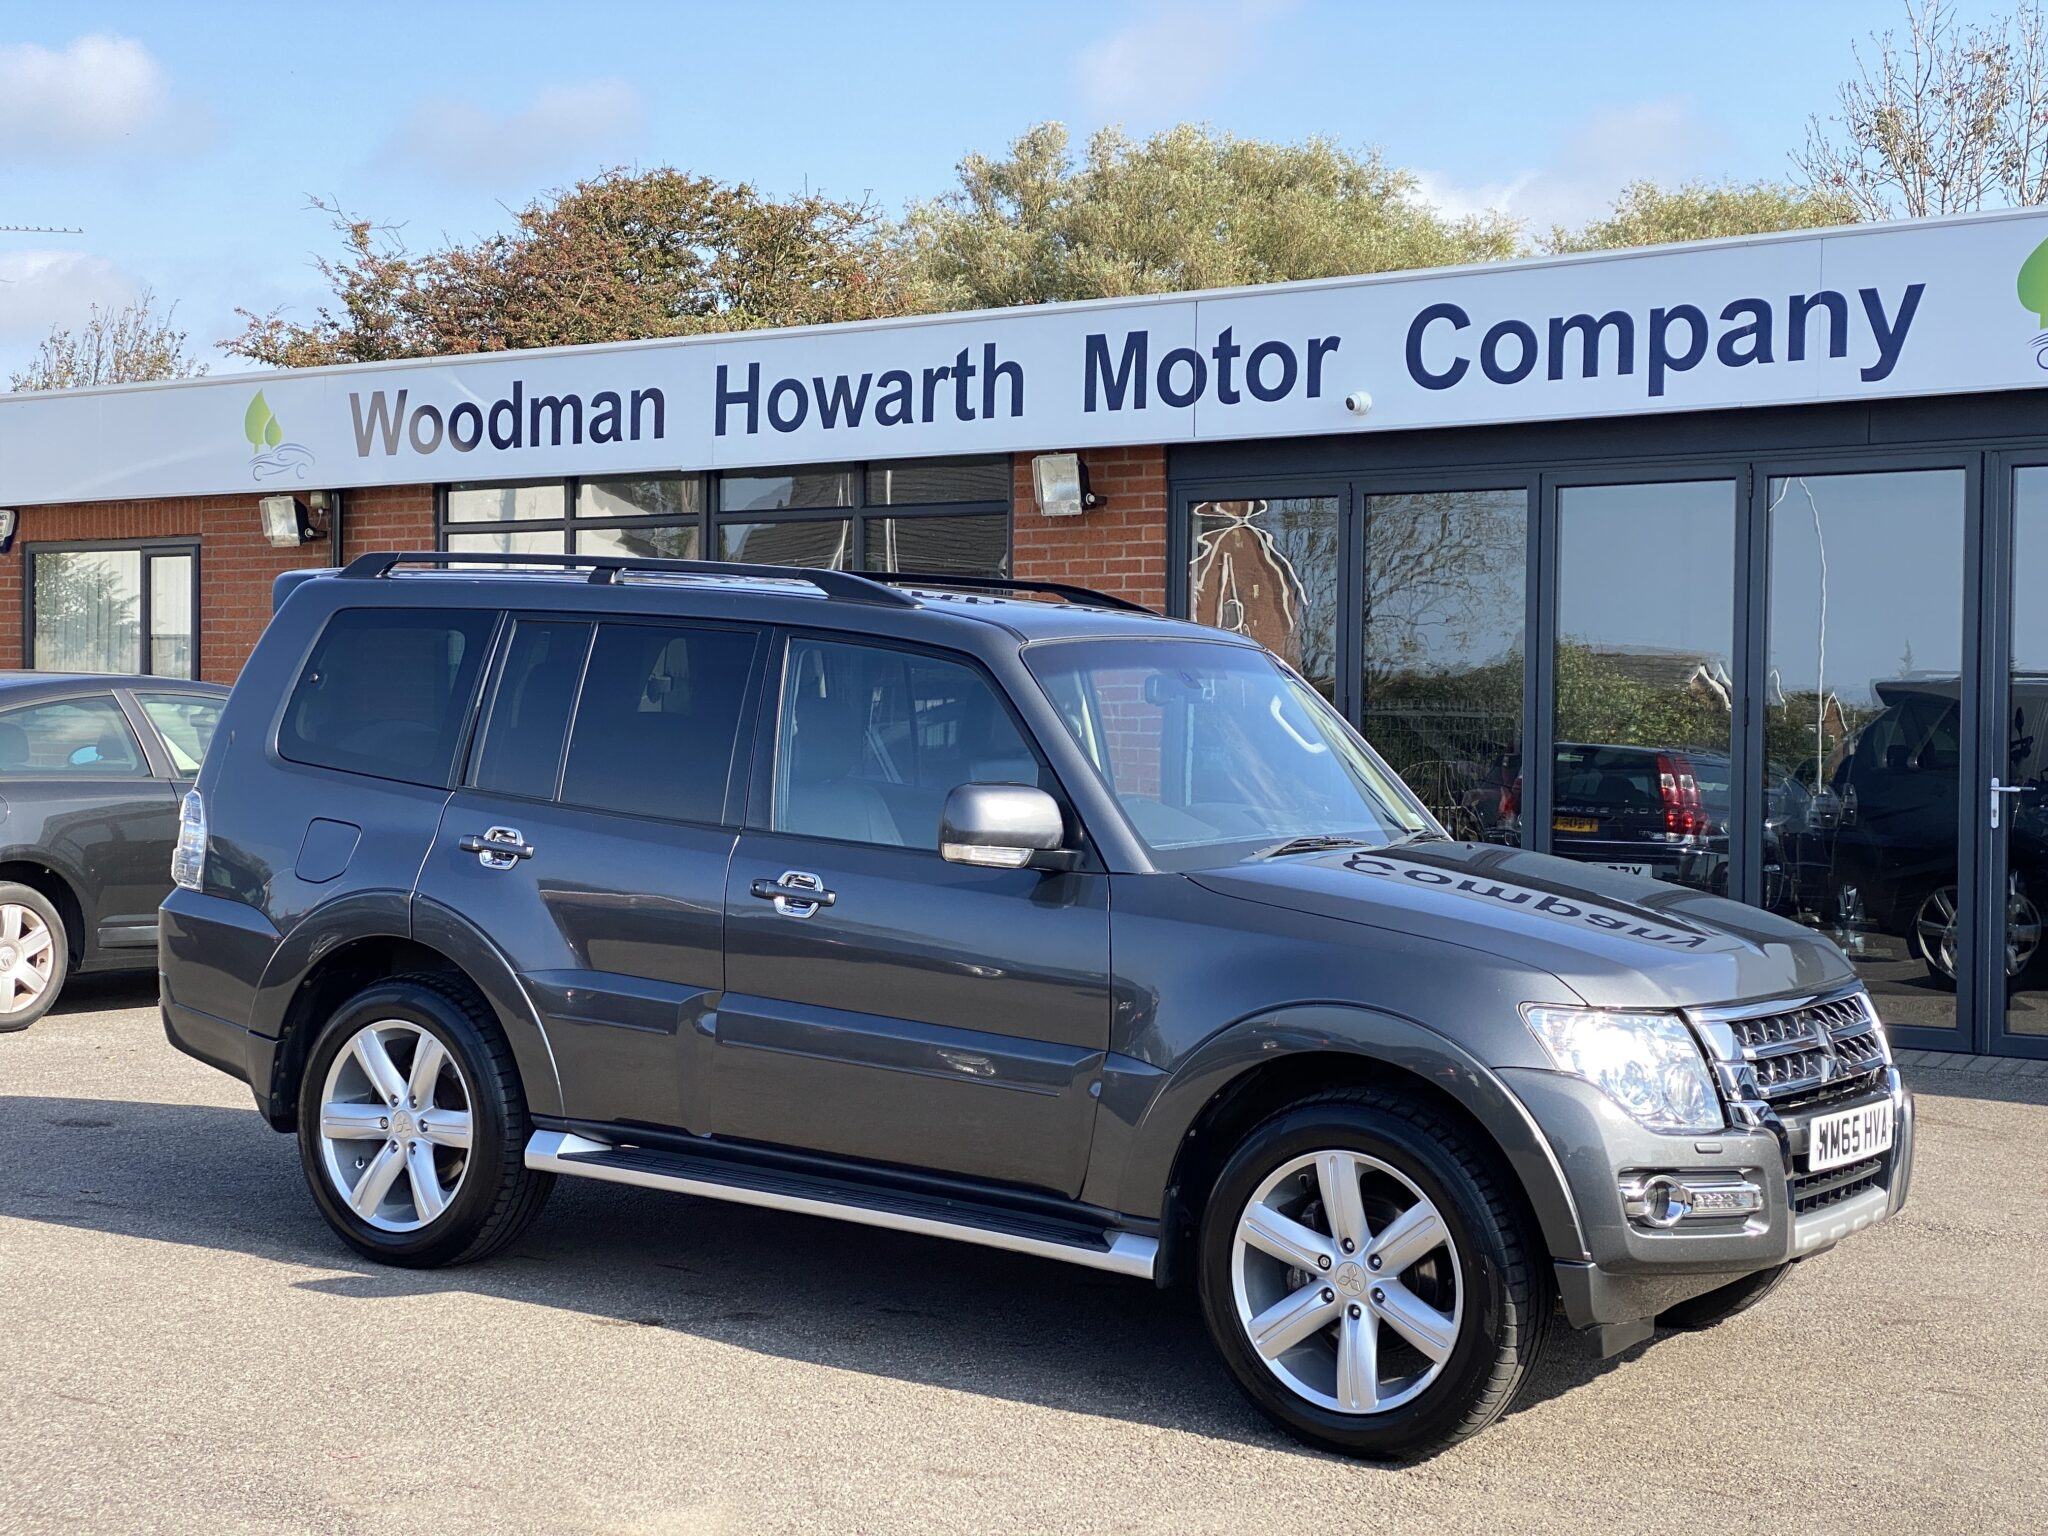 2016 65 MITSUBISHI SHOGUN 3.2 DCI LWB SG4 5 DR AUTO Only 44K Miles Fully Serviced Huge Spec Rear Screens